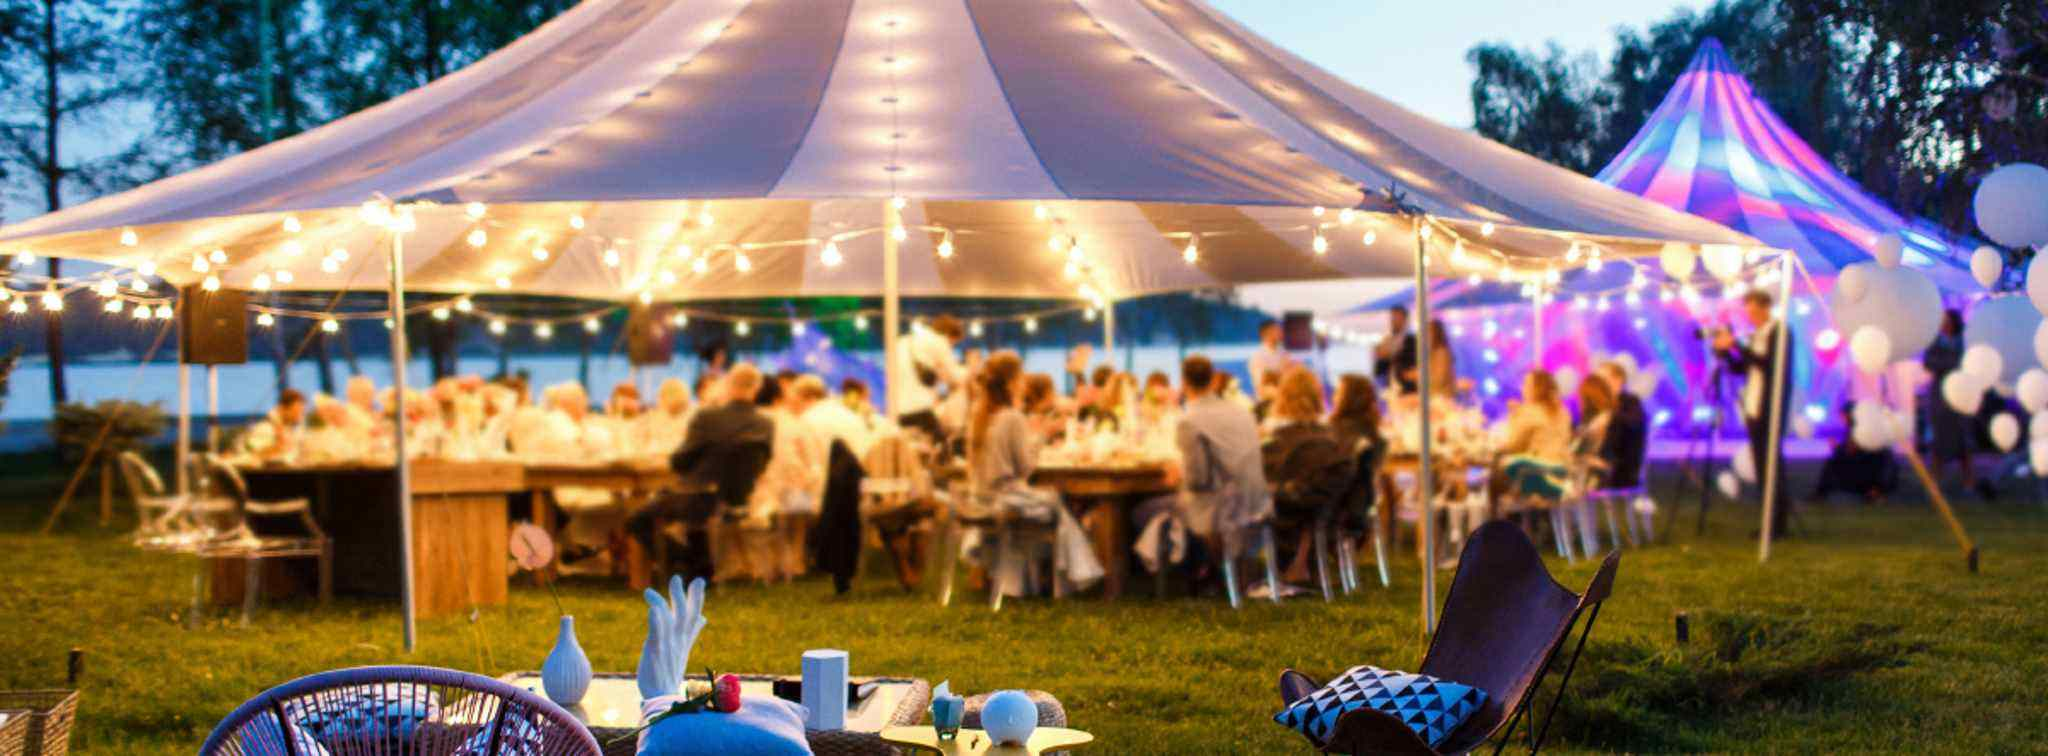 Wedding Guests in a Marquee - Example of our Services for Outside Wedding Caterers in Derby - Nottingham - Leicester - Bus Bar Hire Marquee Hire